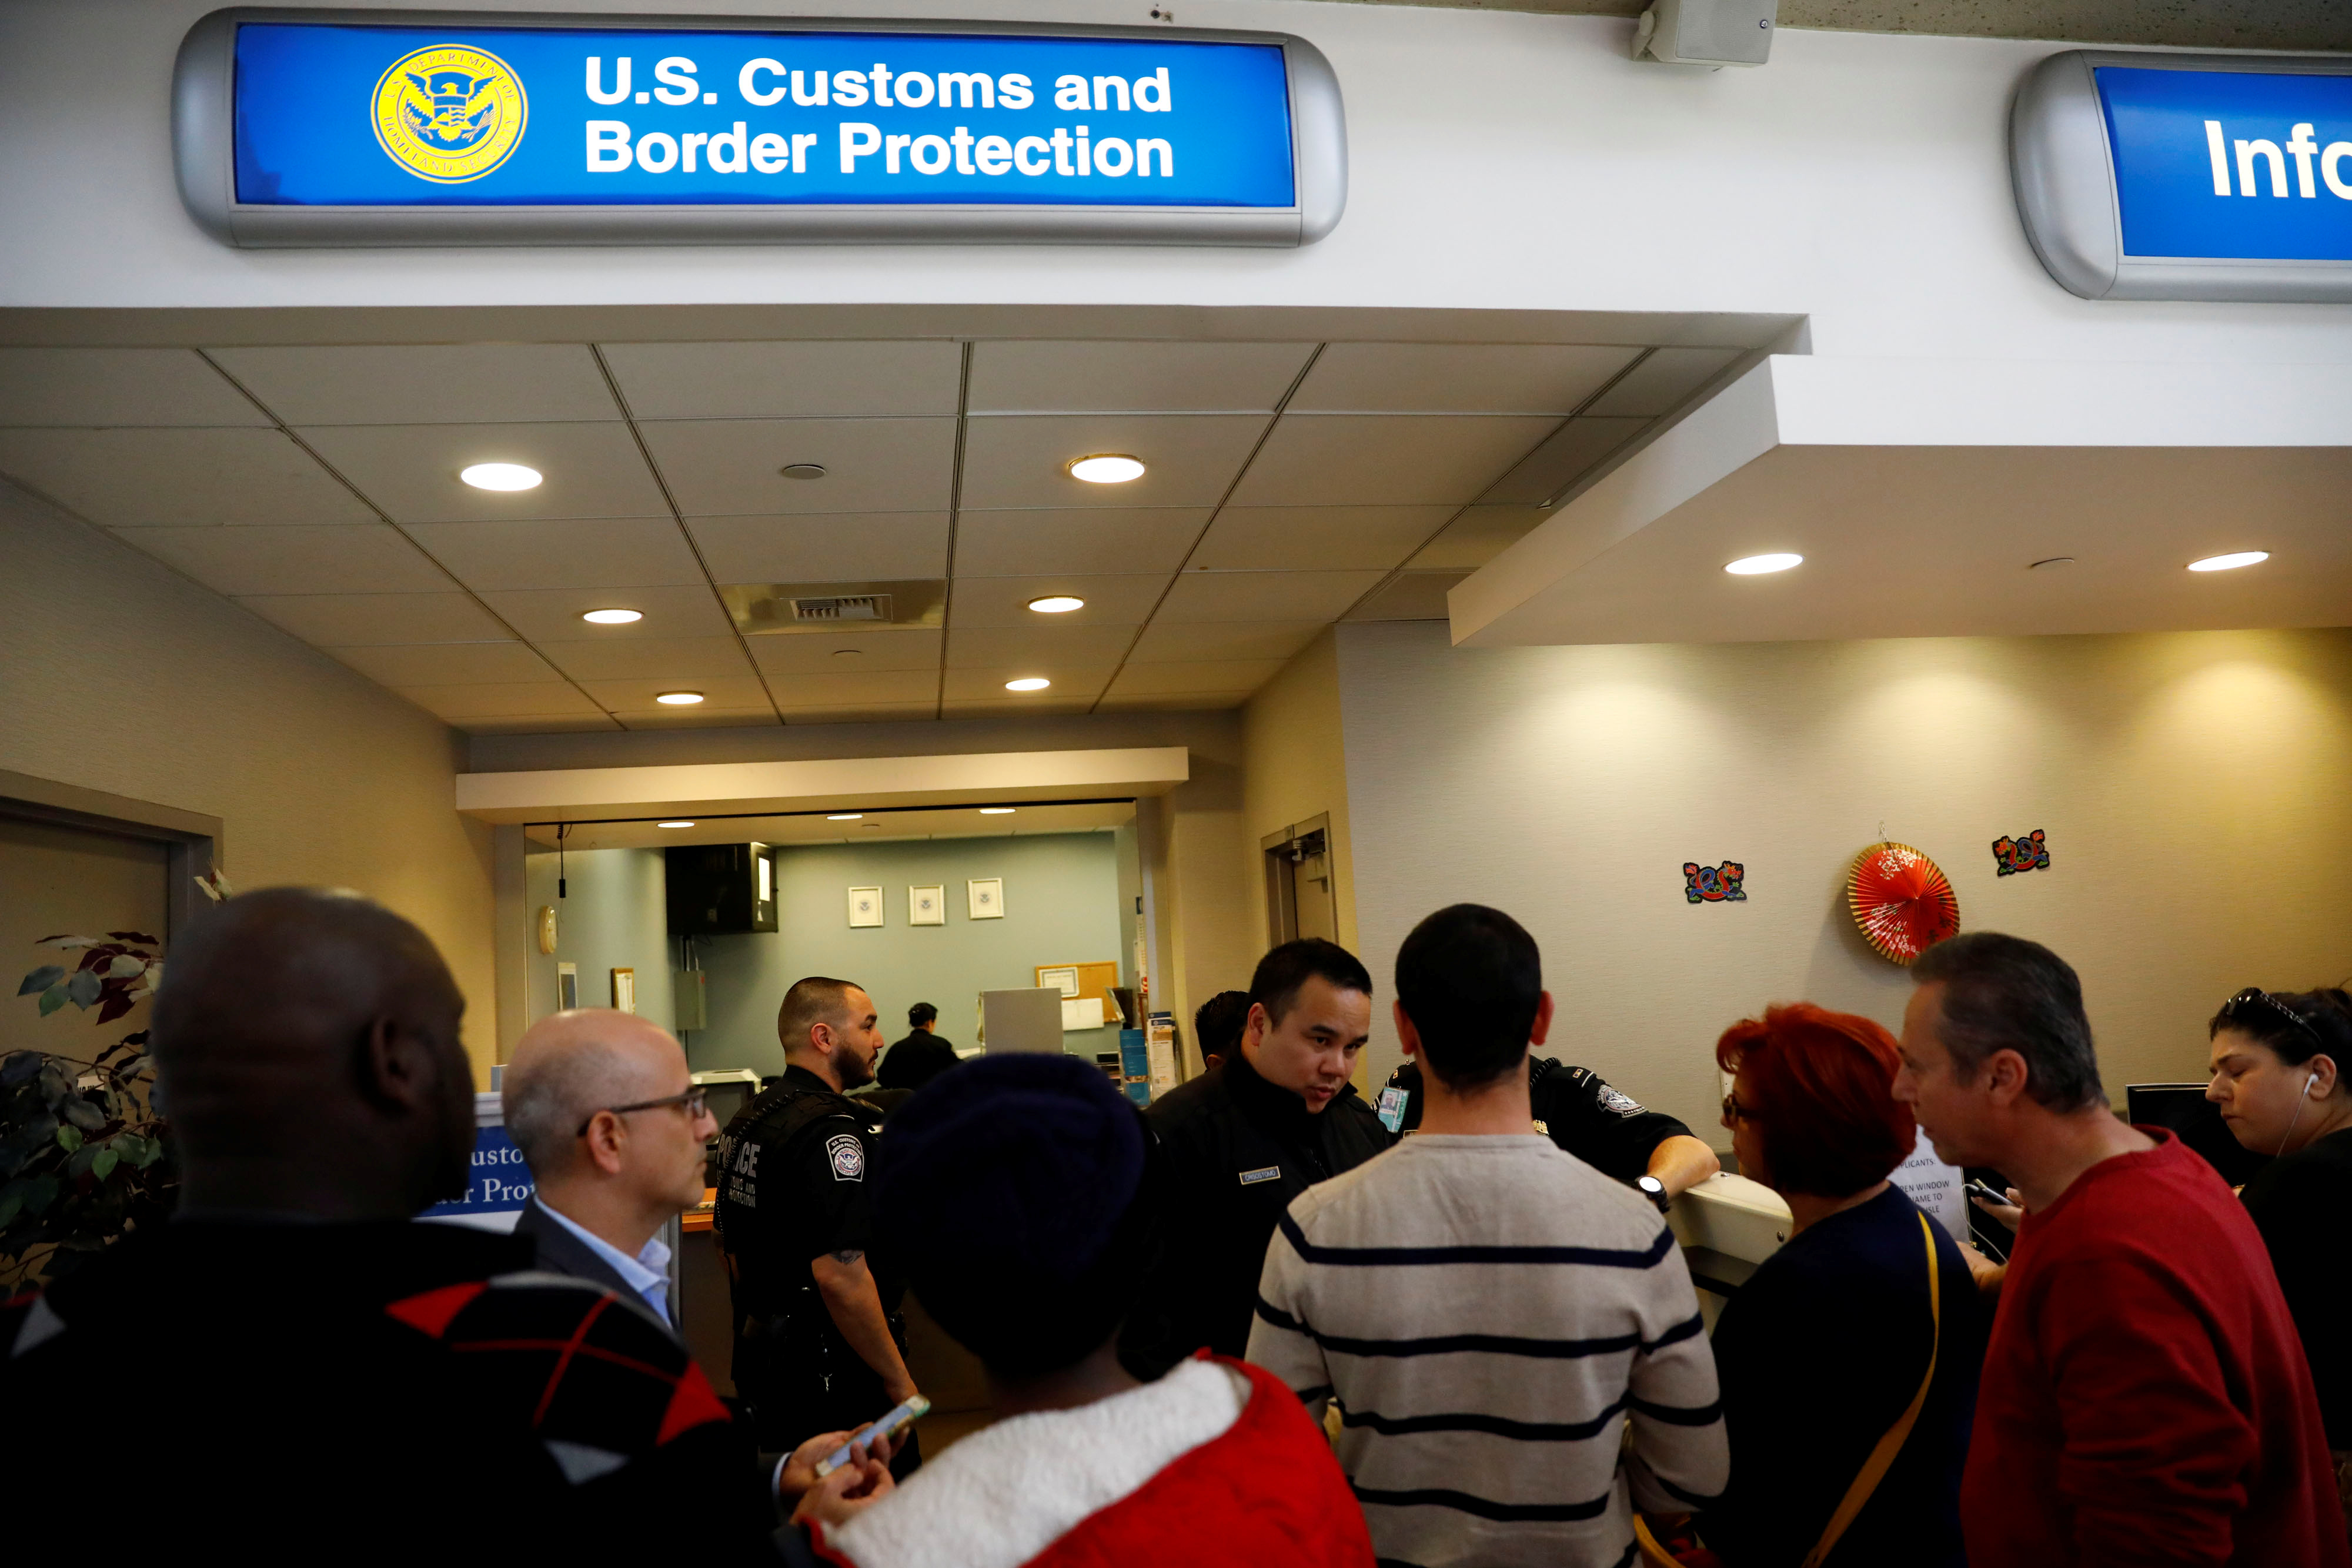 US Customs and Border Protection officers stand outside an office